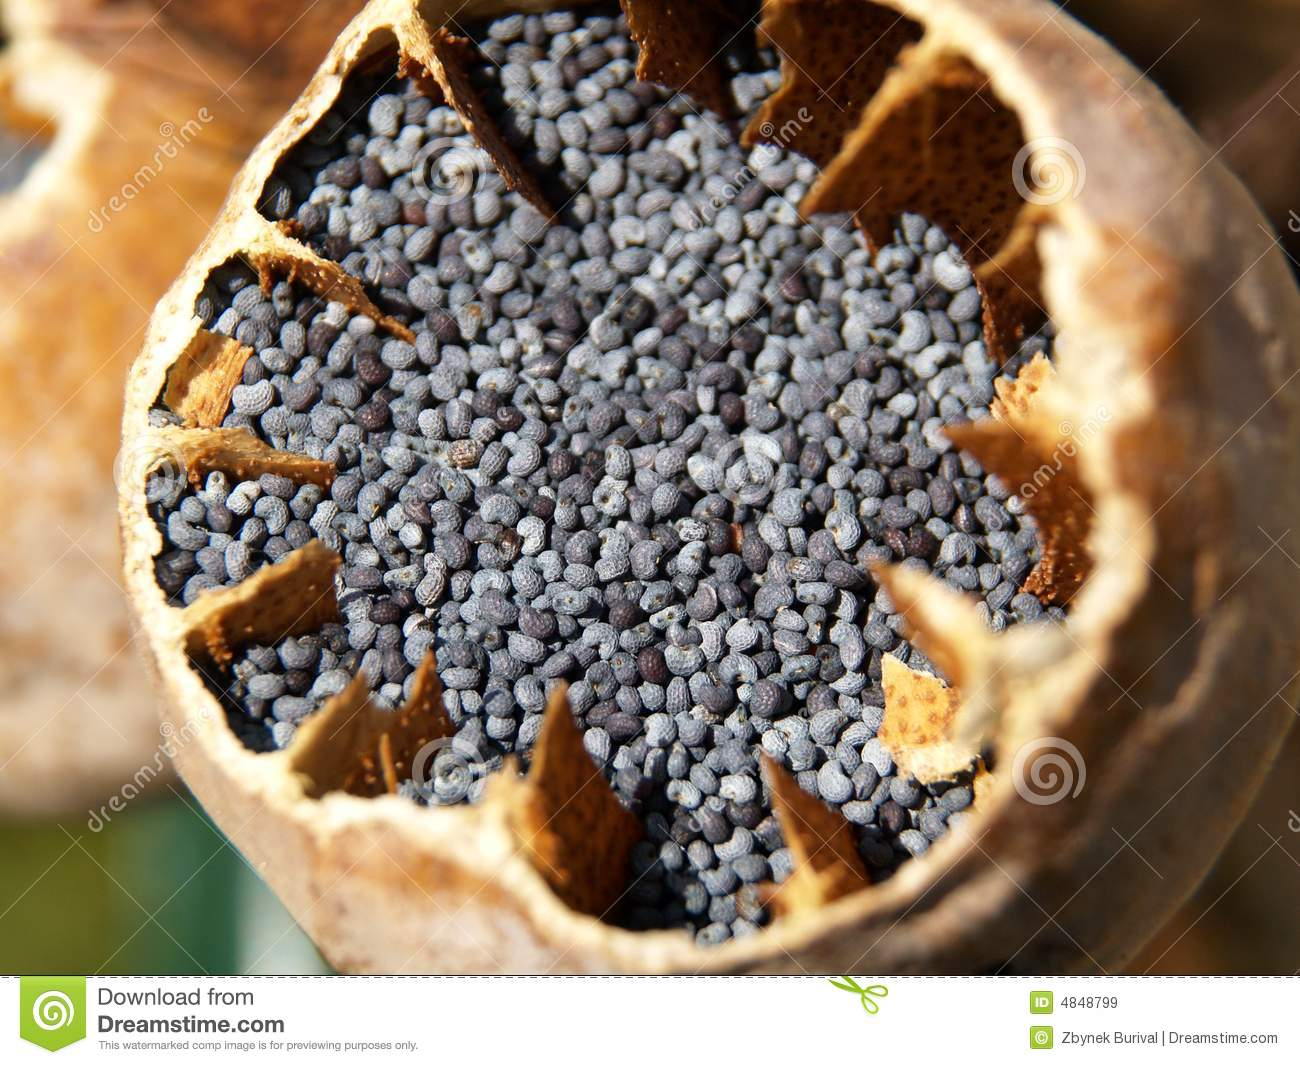 poppy seeds royalty free stock images image 4848799